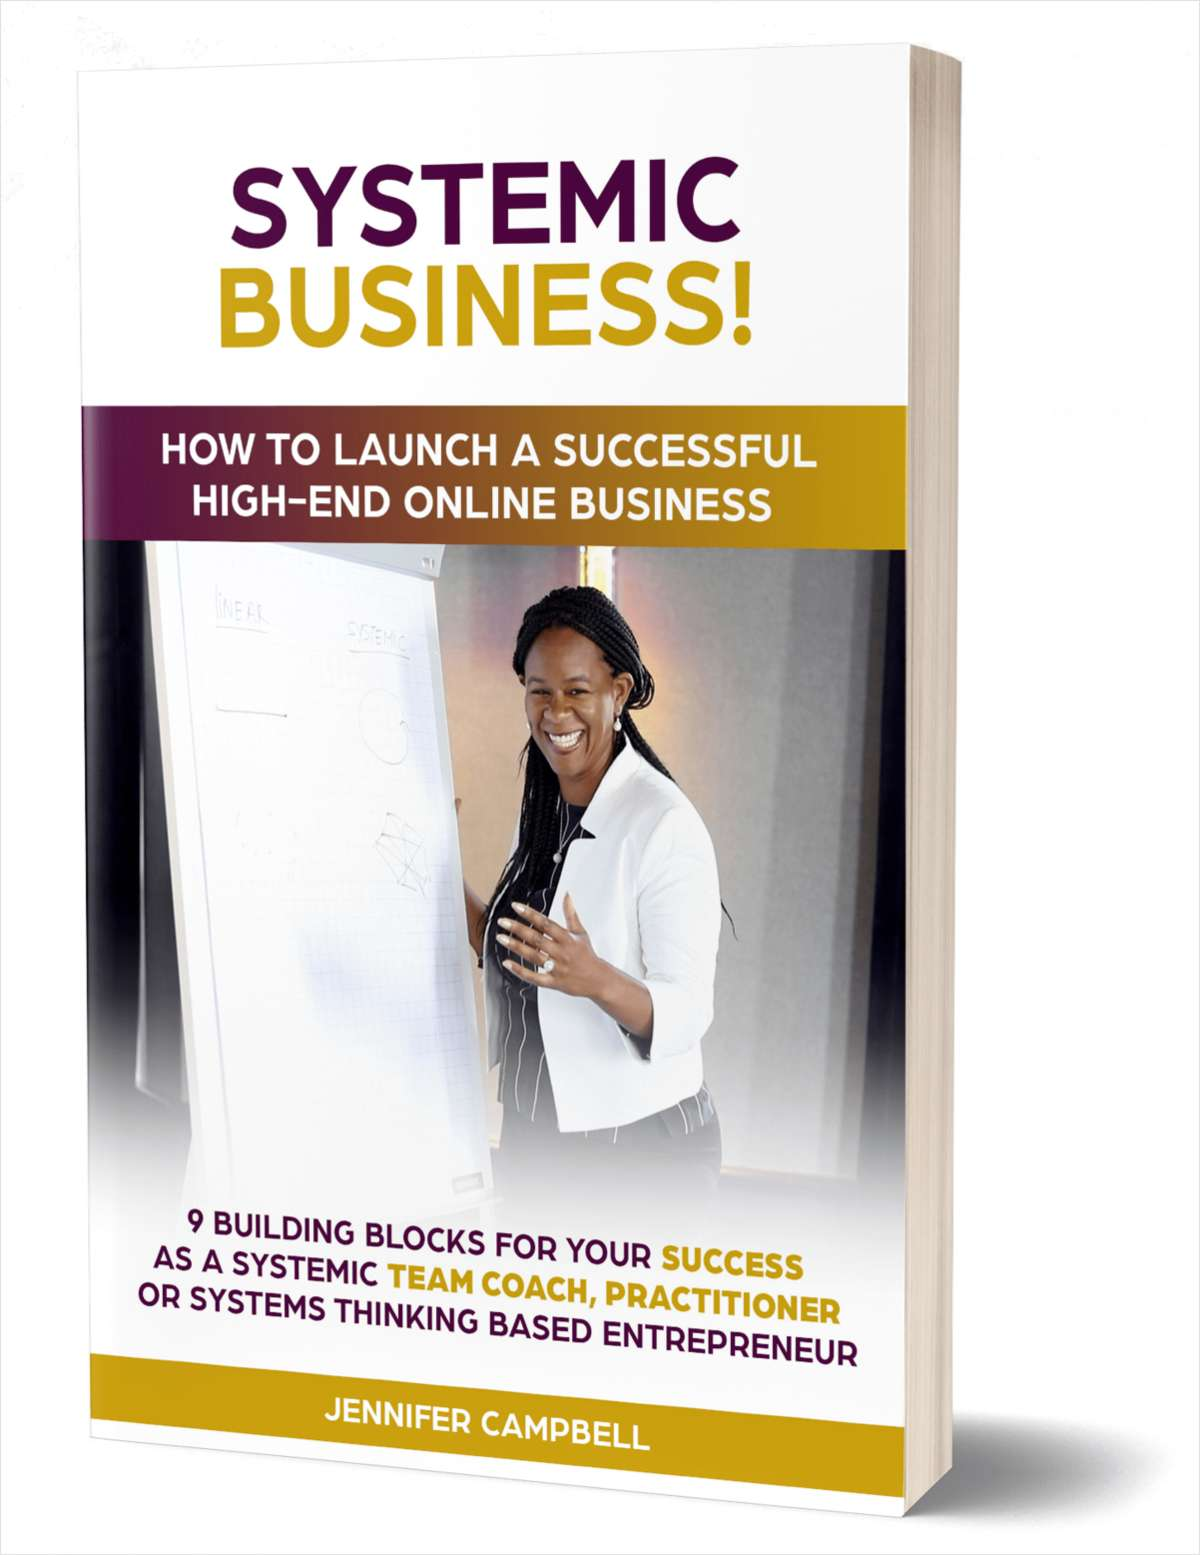 Systemic Business: How to Launch a Successful High-End Online Business